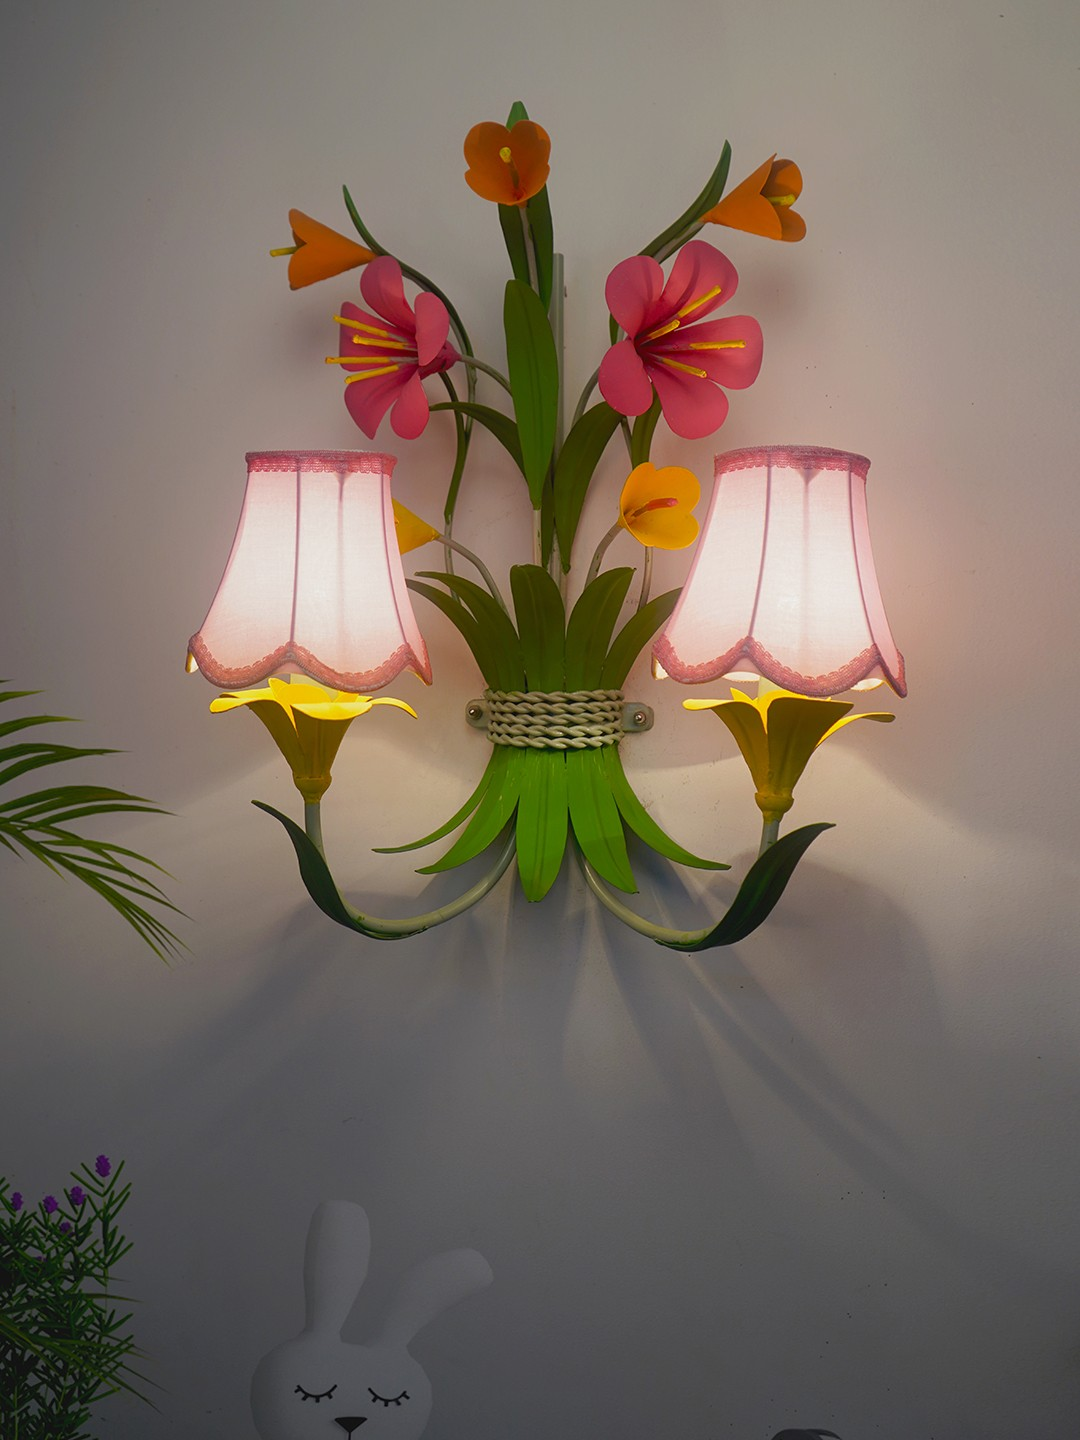 Boho Chic Metal Flowers Bouquet Wall Sconce with Pink Fabric Shades